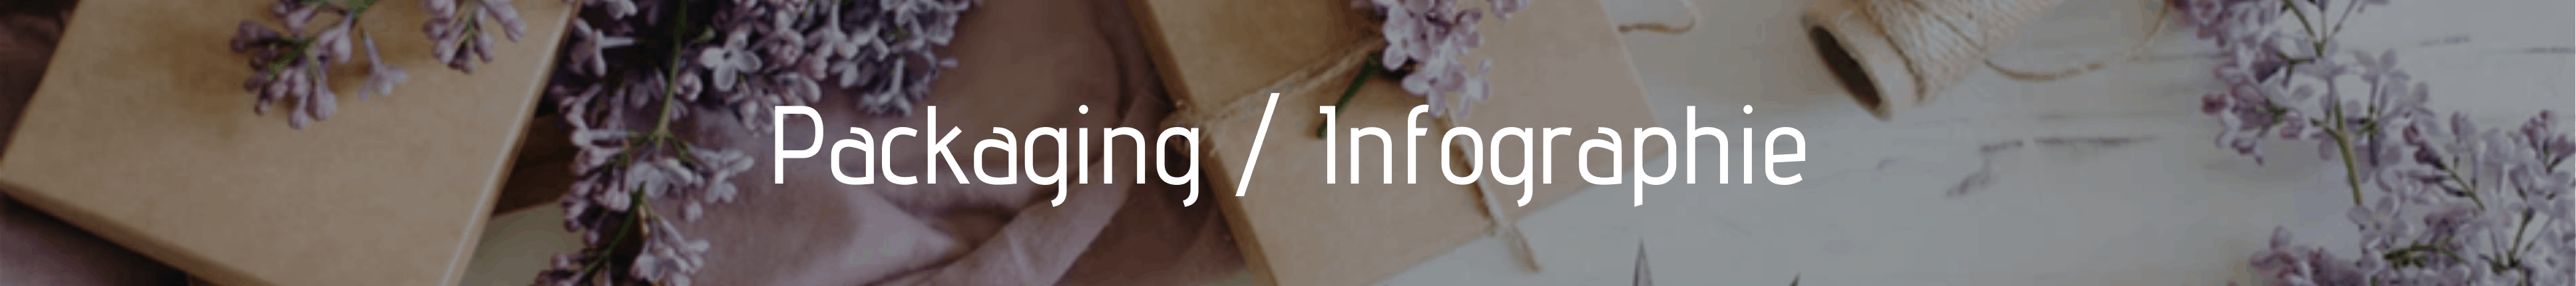 Packaging - Inforgraphie